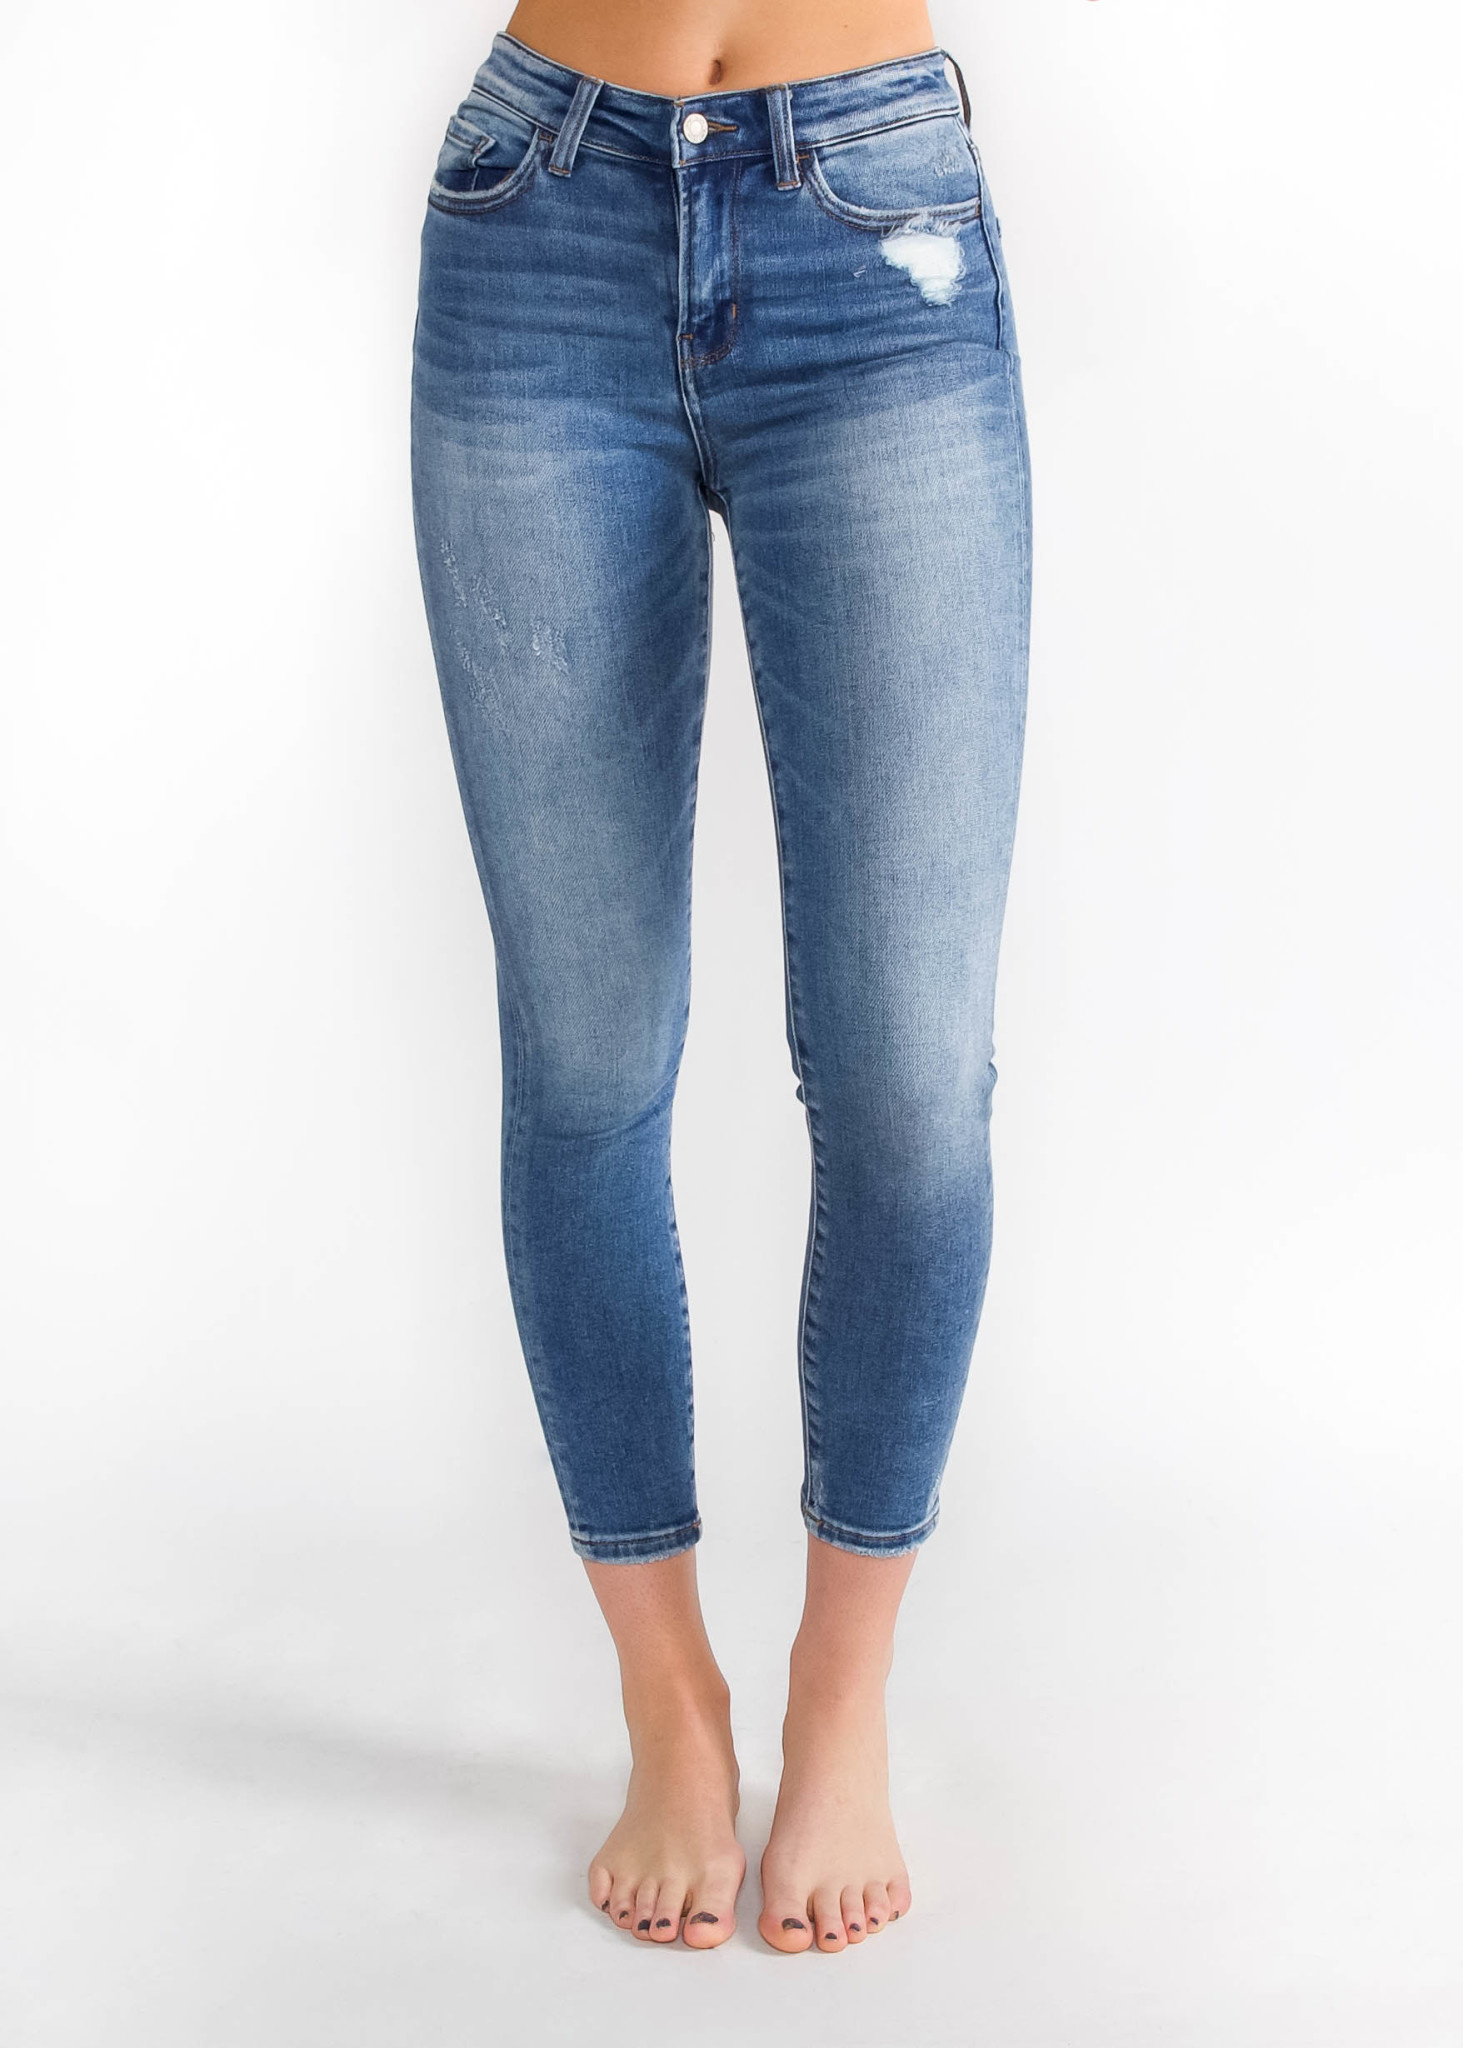 REPUTATION DISTRESSED JEANS